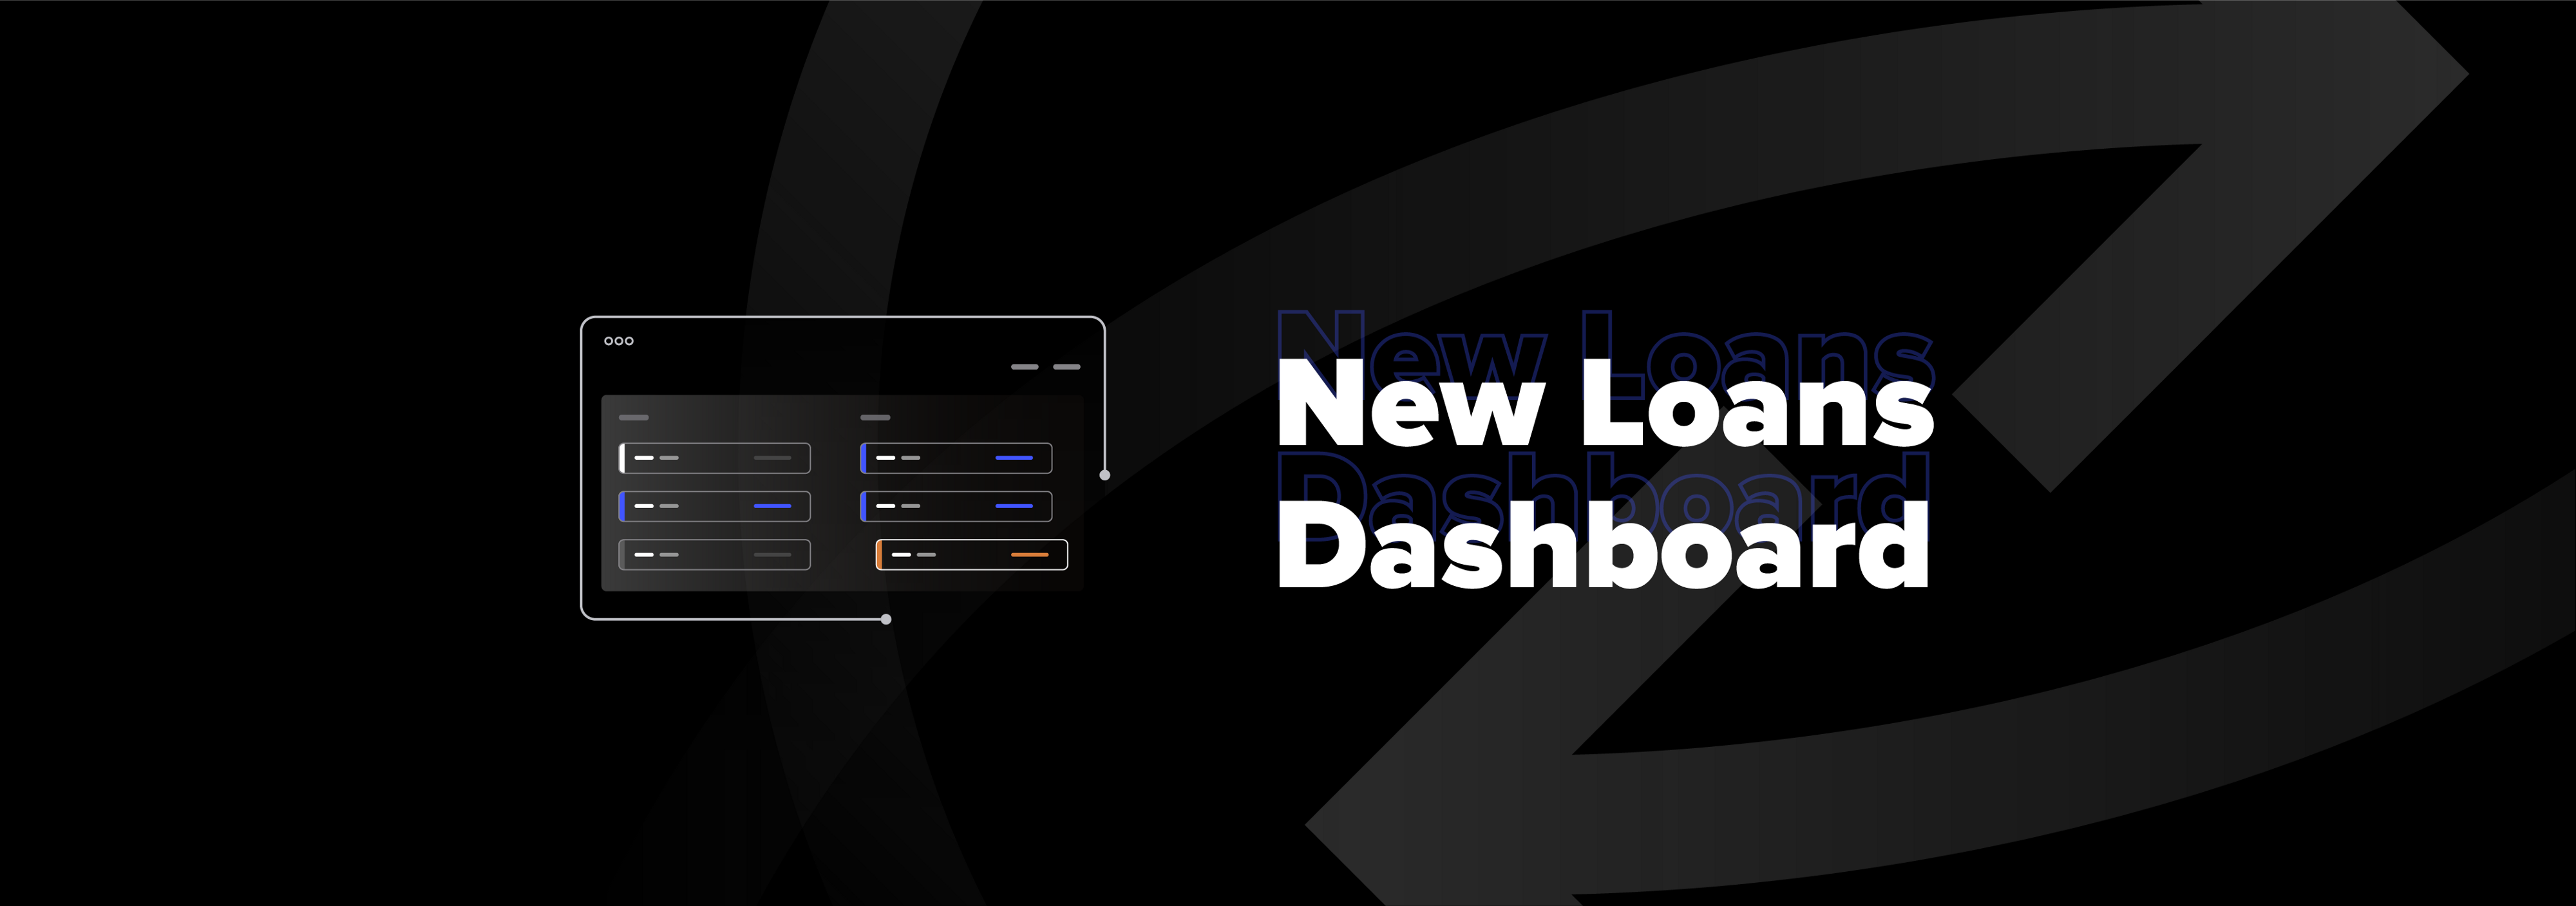 Users can manage all their loans in the new dashboard!